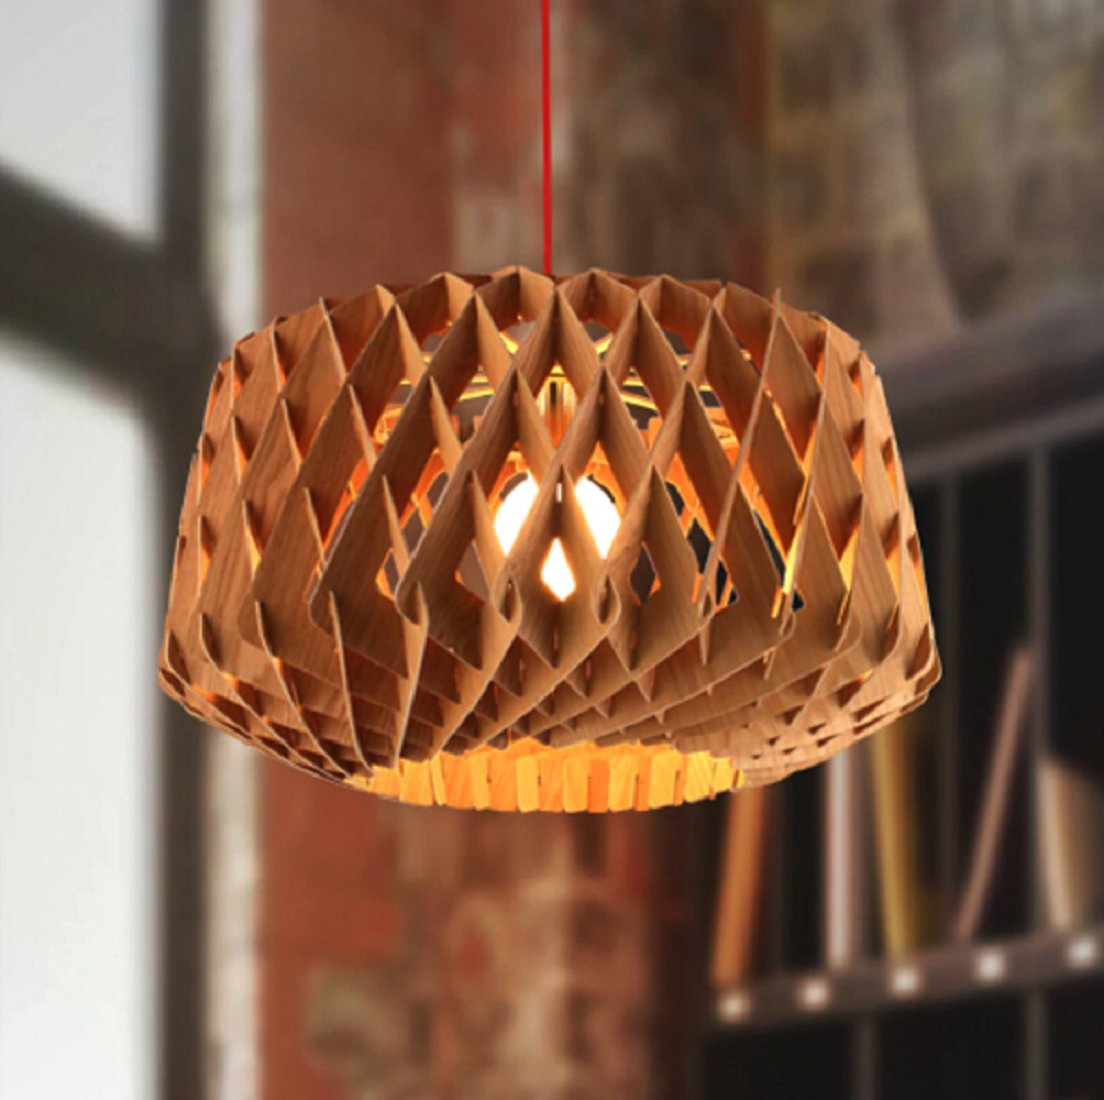 Calfee Wooden 1-Light Geometric Pendant with regard to Melora 1-Light Single Geometric Pendants (Image 6 of 30)